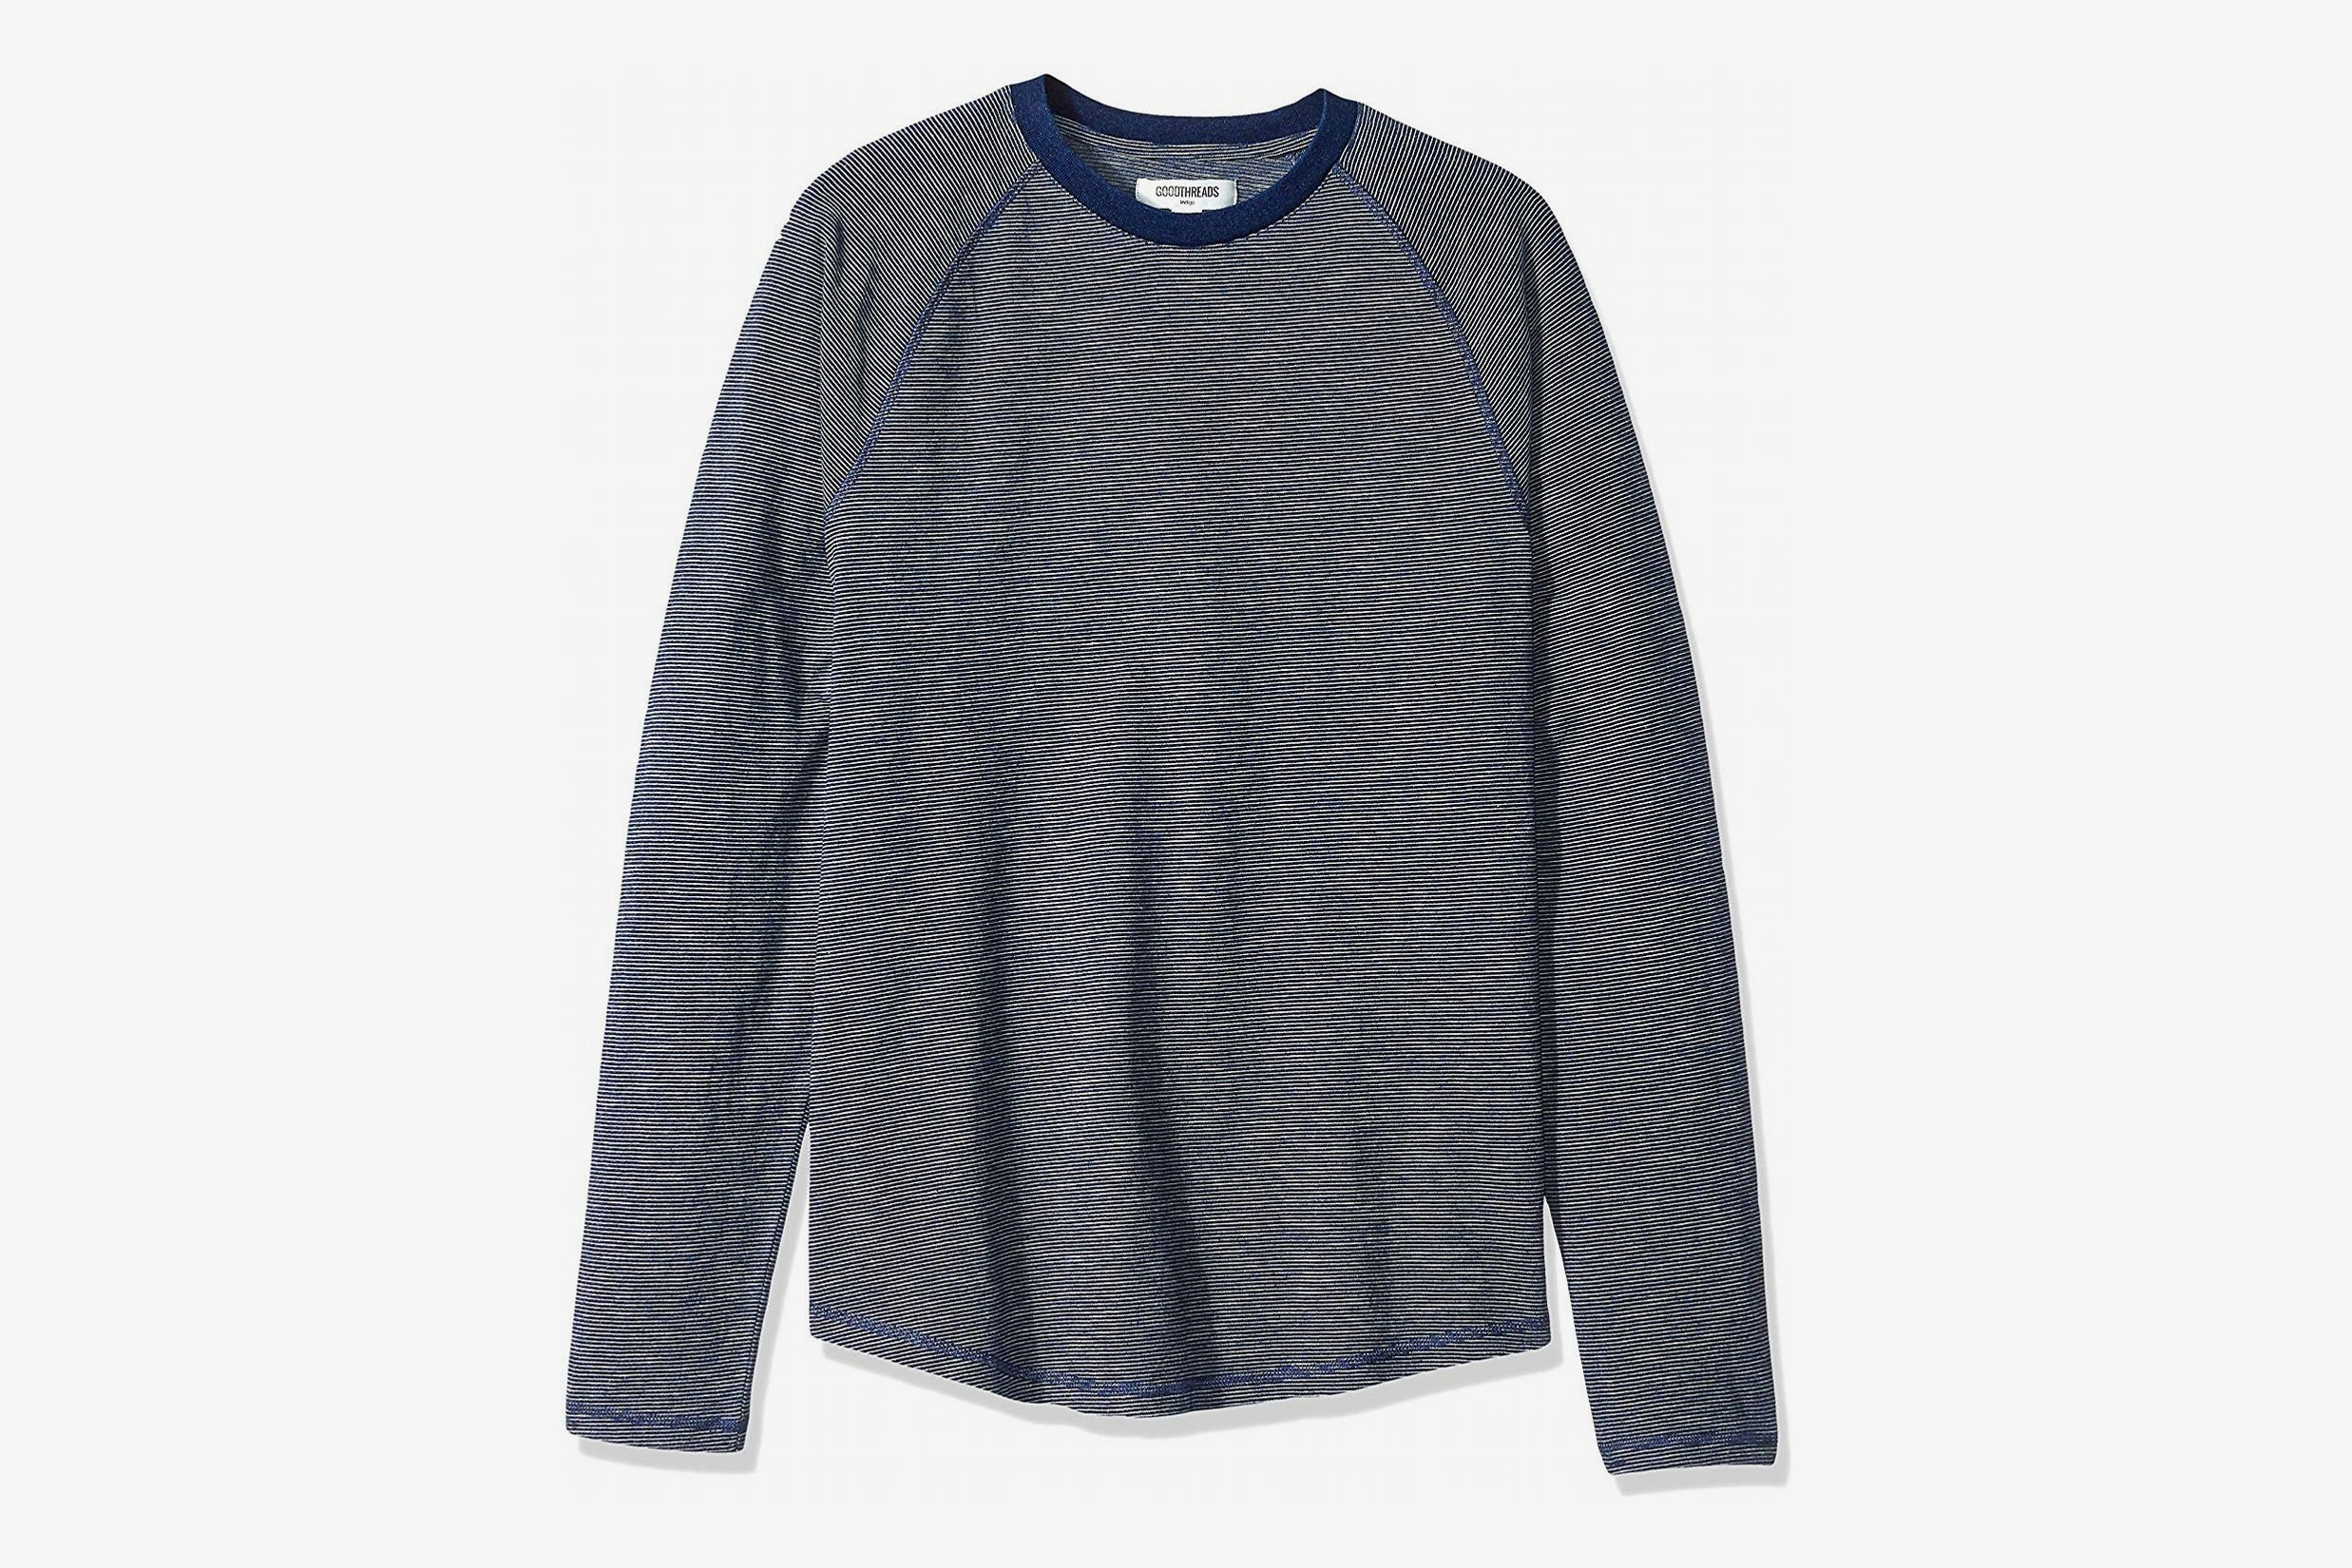 Goodthreads Men's Long-Sleeve Indigo Raglan T-Shirt